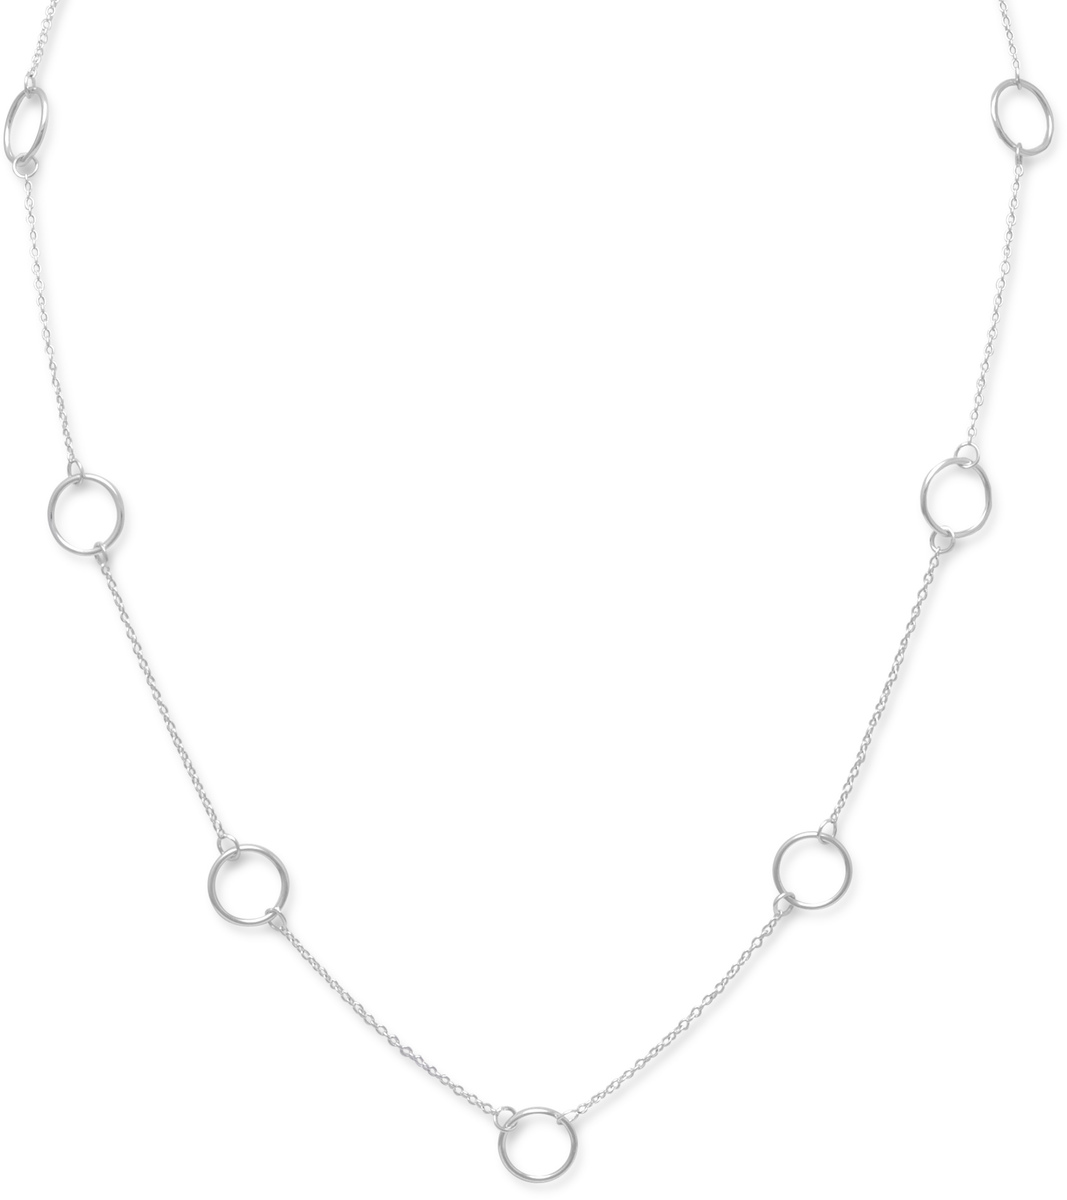 "16"" Sterling Silver Chain with Circle Links"